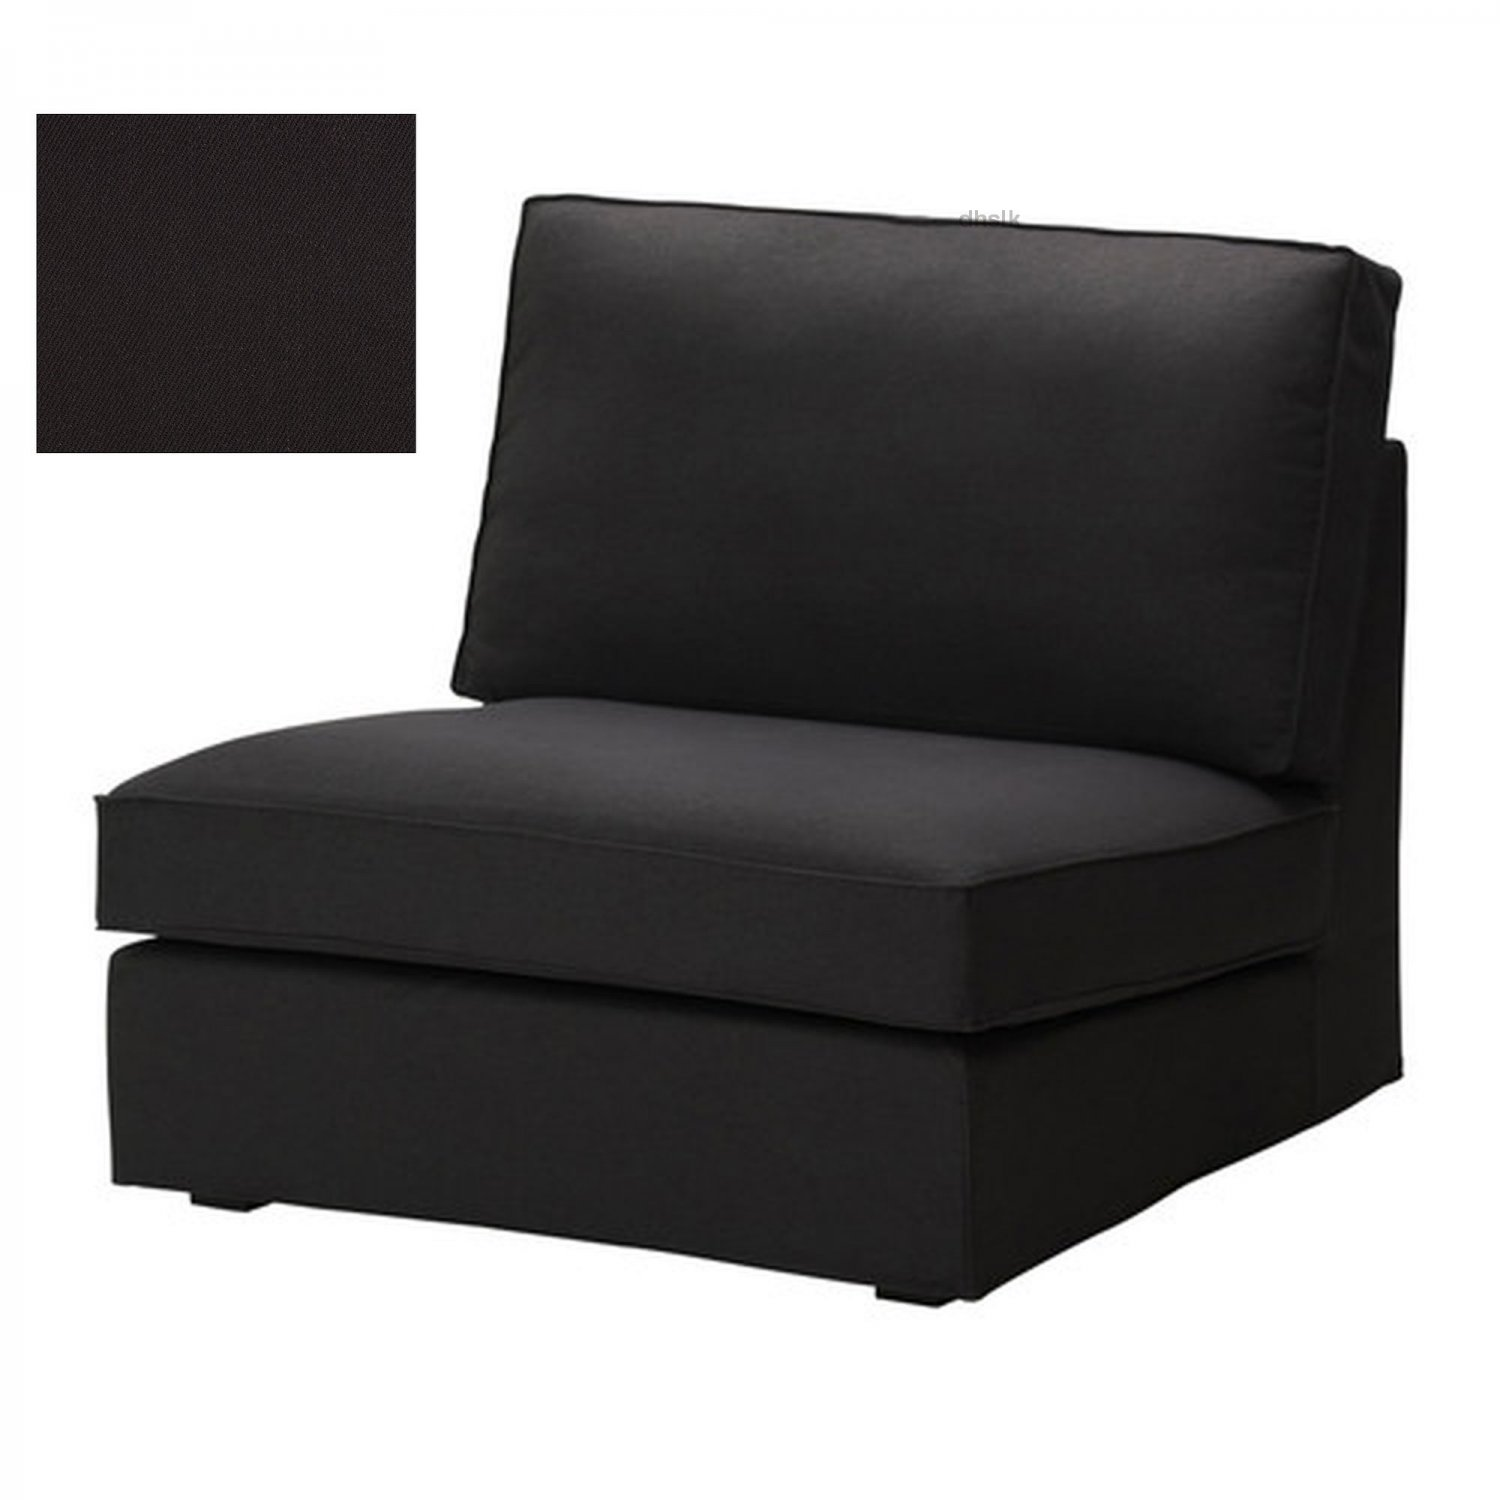 ikea kivik 1 one seat sofa slipcover chair cover idemo black cotton. Black Bedroom Furniture Sets. Home Design Ideas